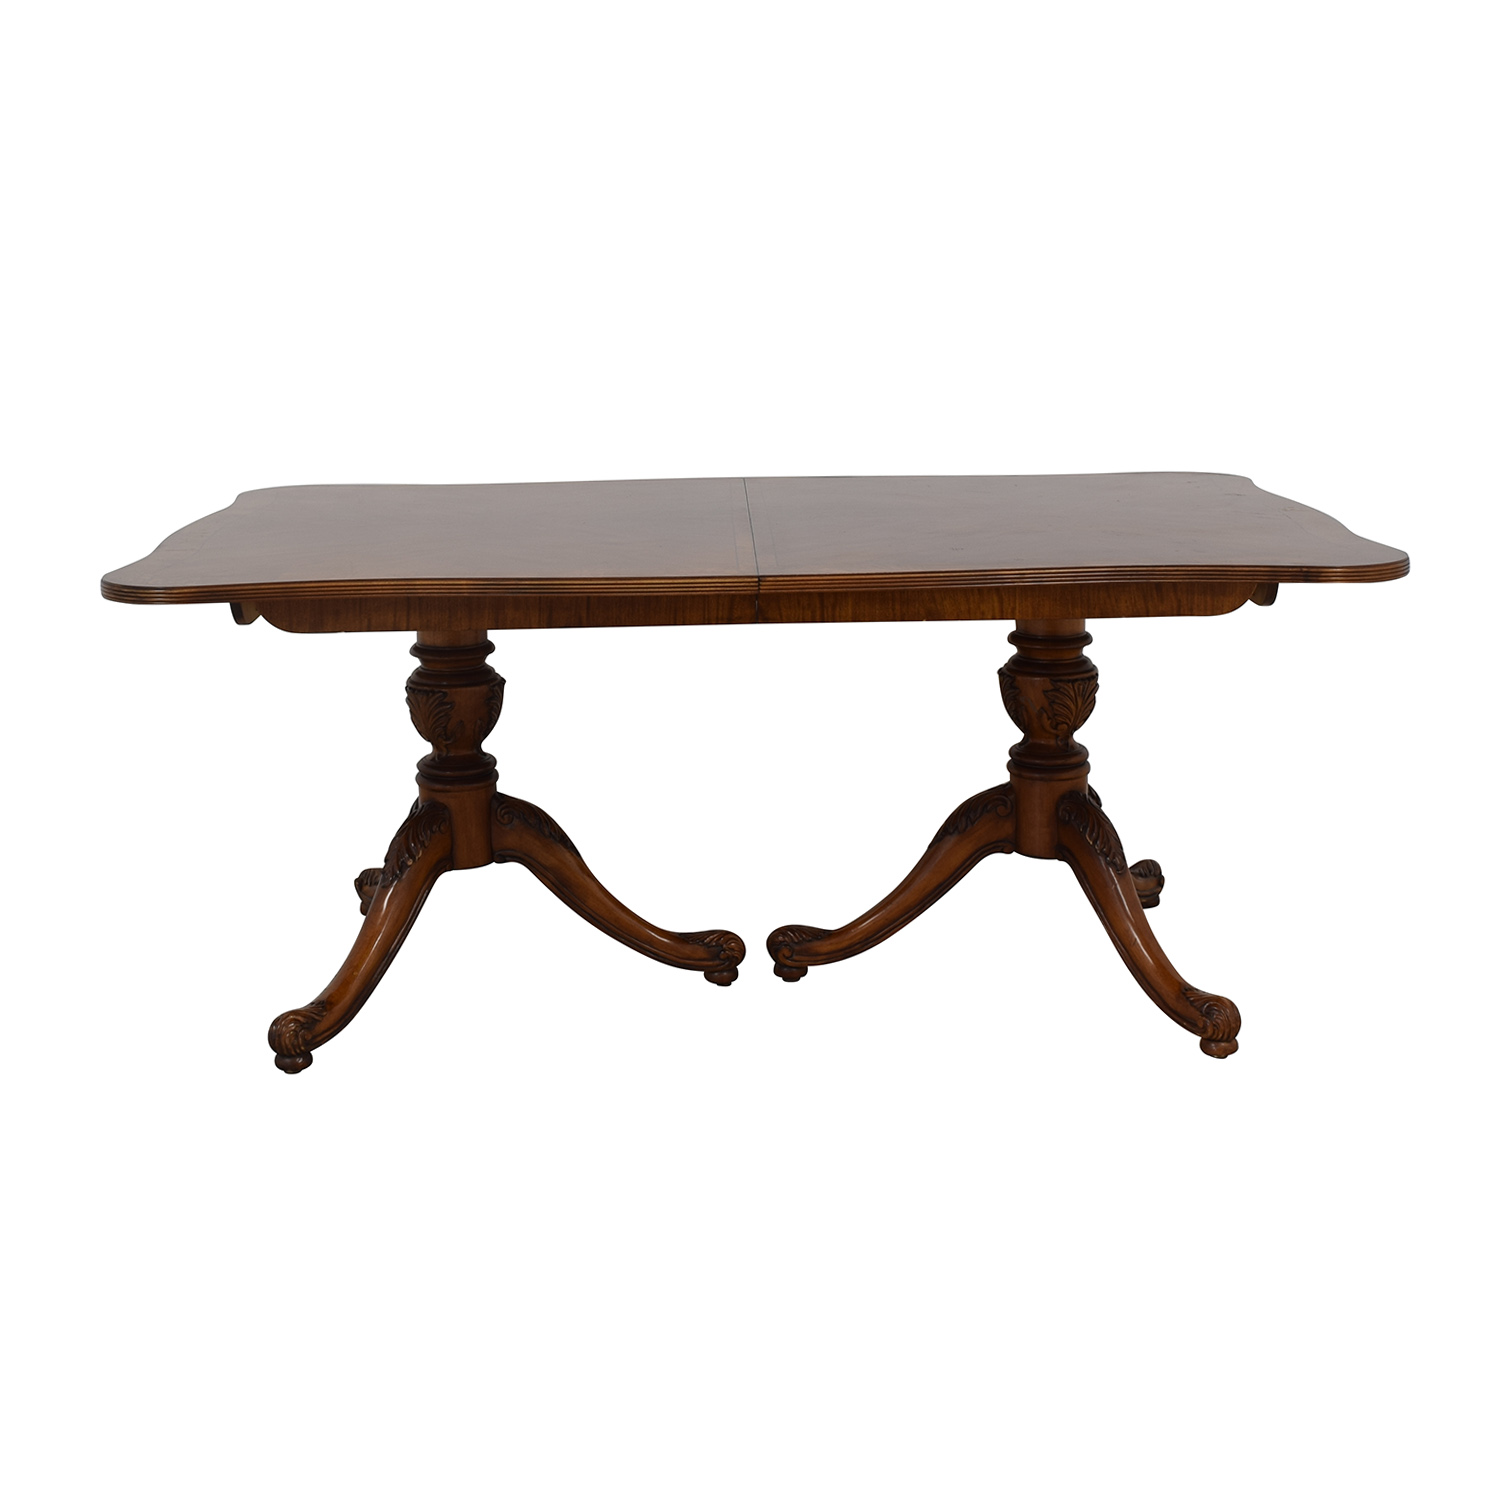 Drexel Heritage Drexel Heritage Dining Table on sale